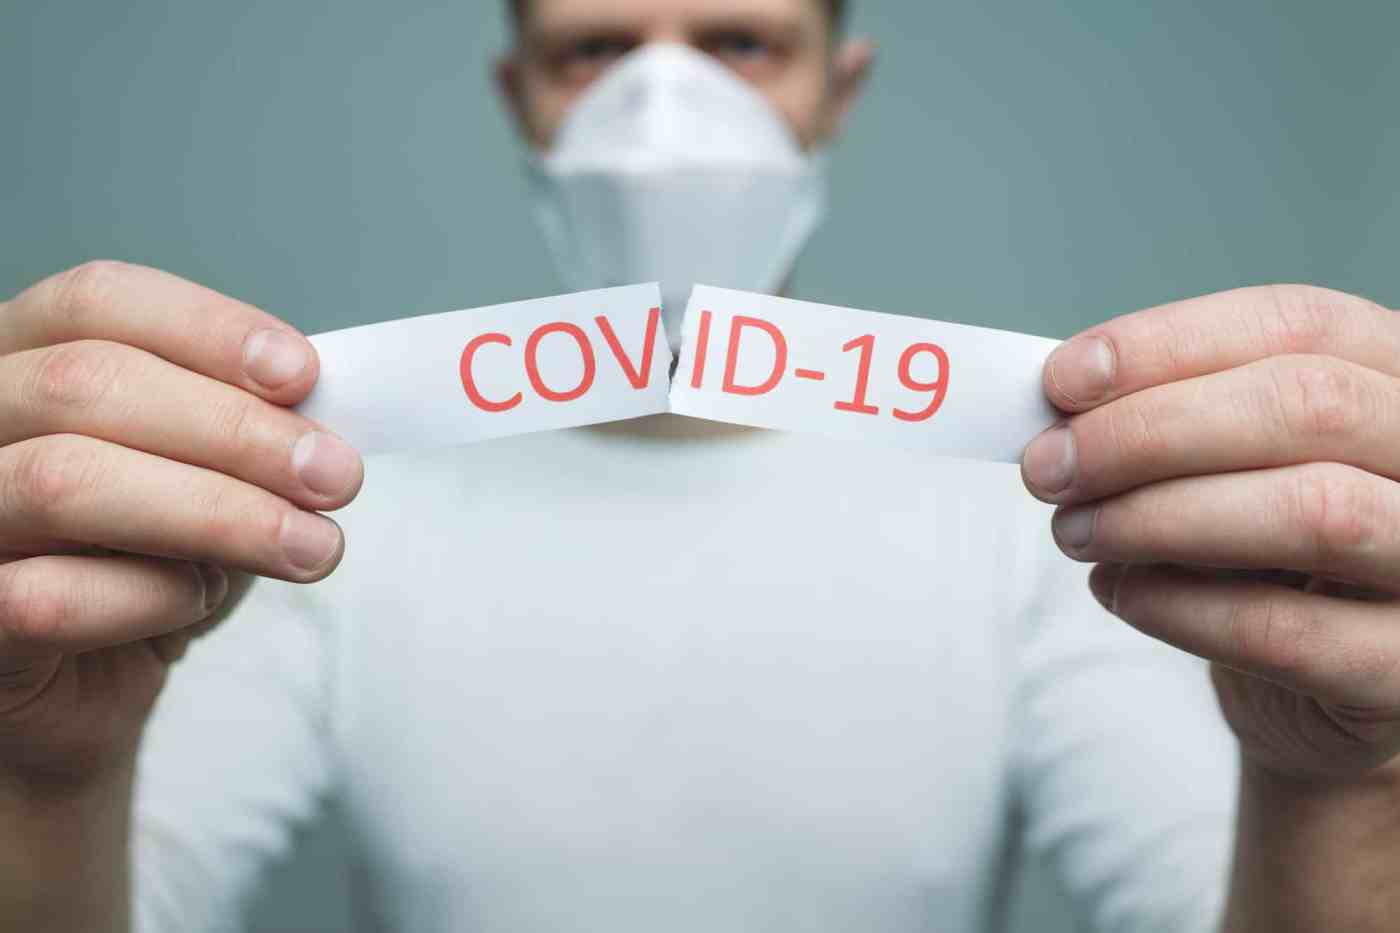 Worried man wearing a respiratory mask, holding the Coronavirus Covid-19 sign